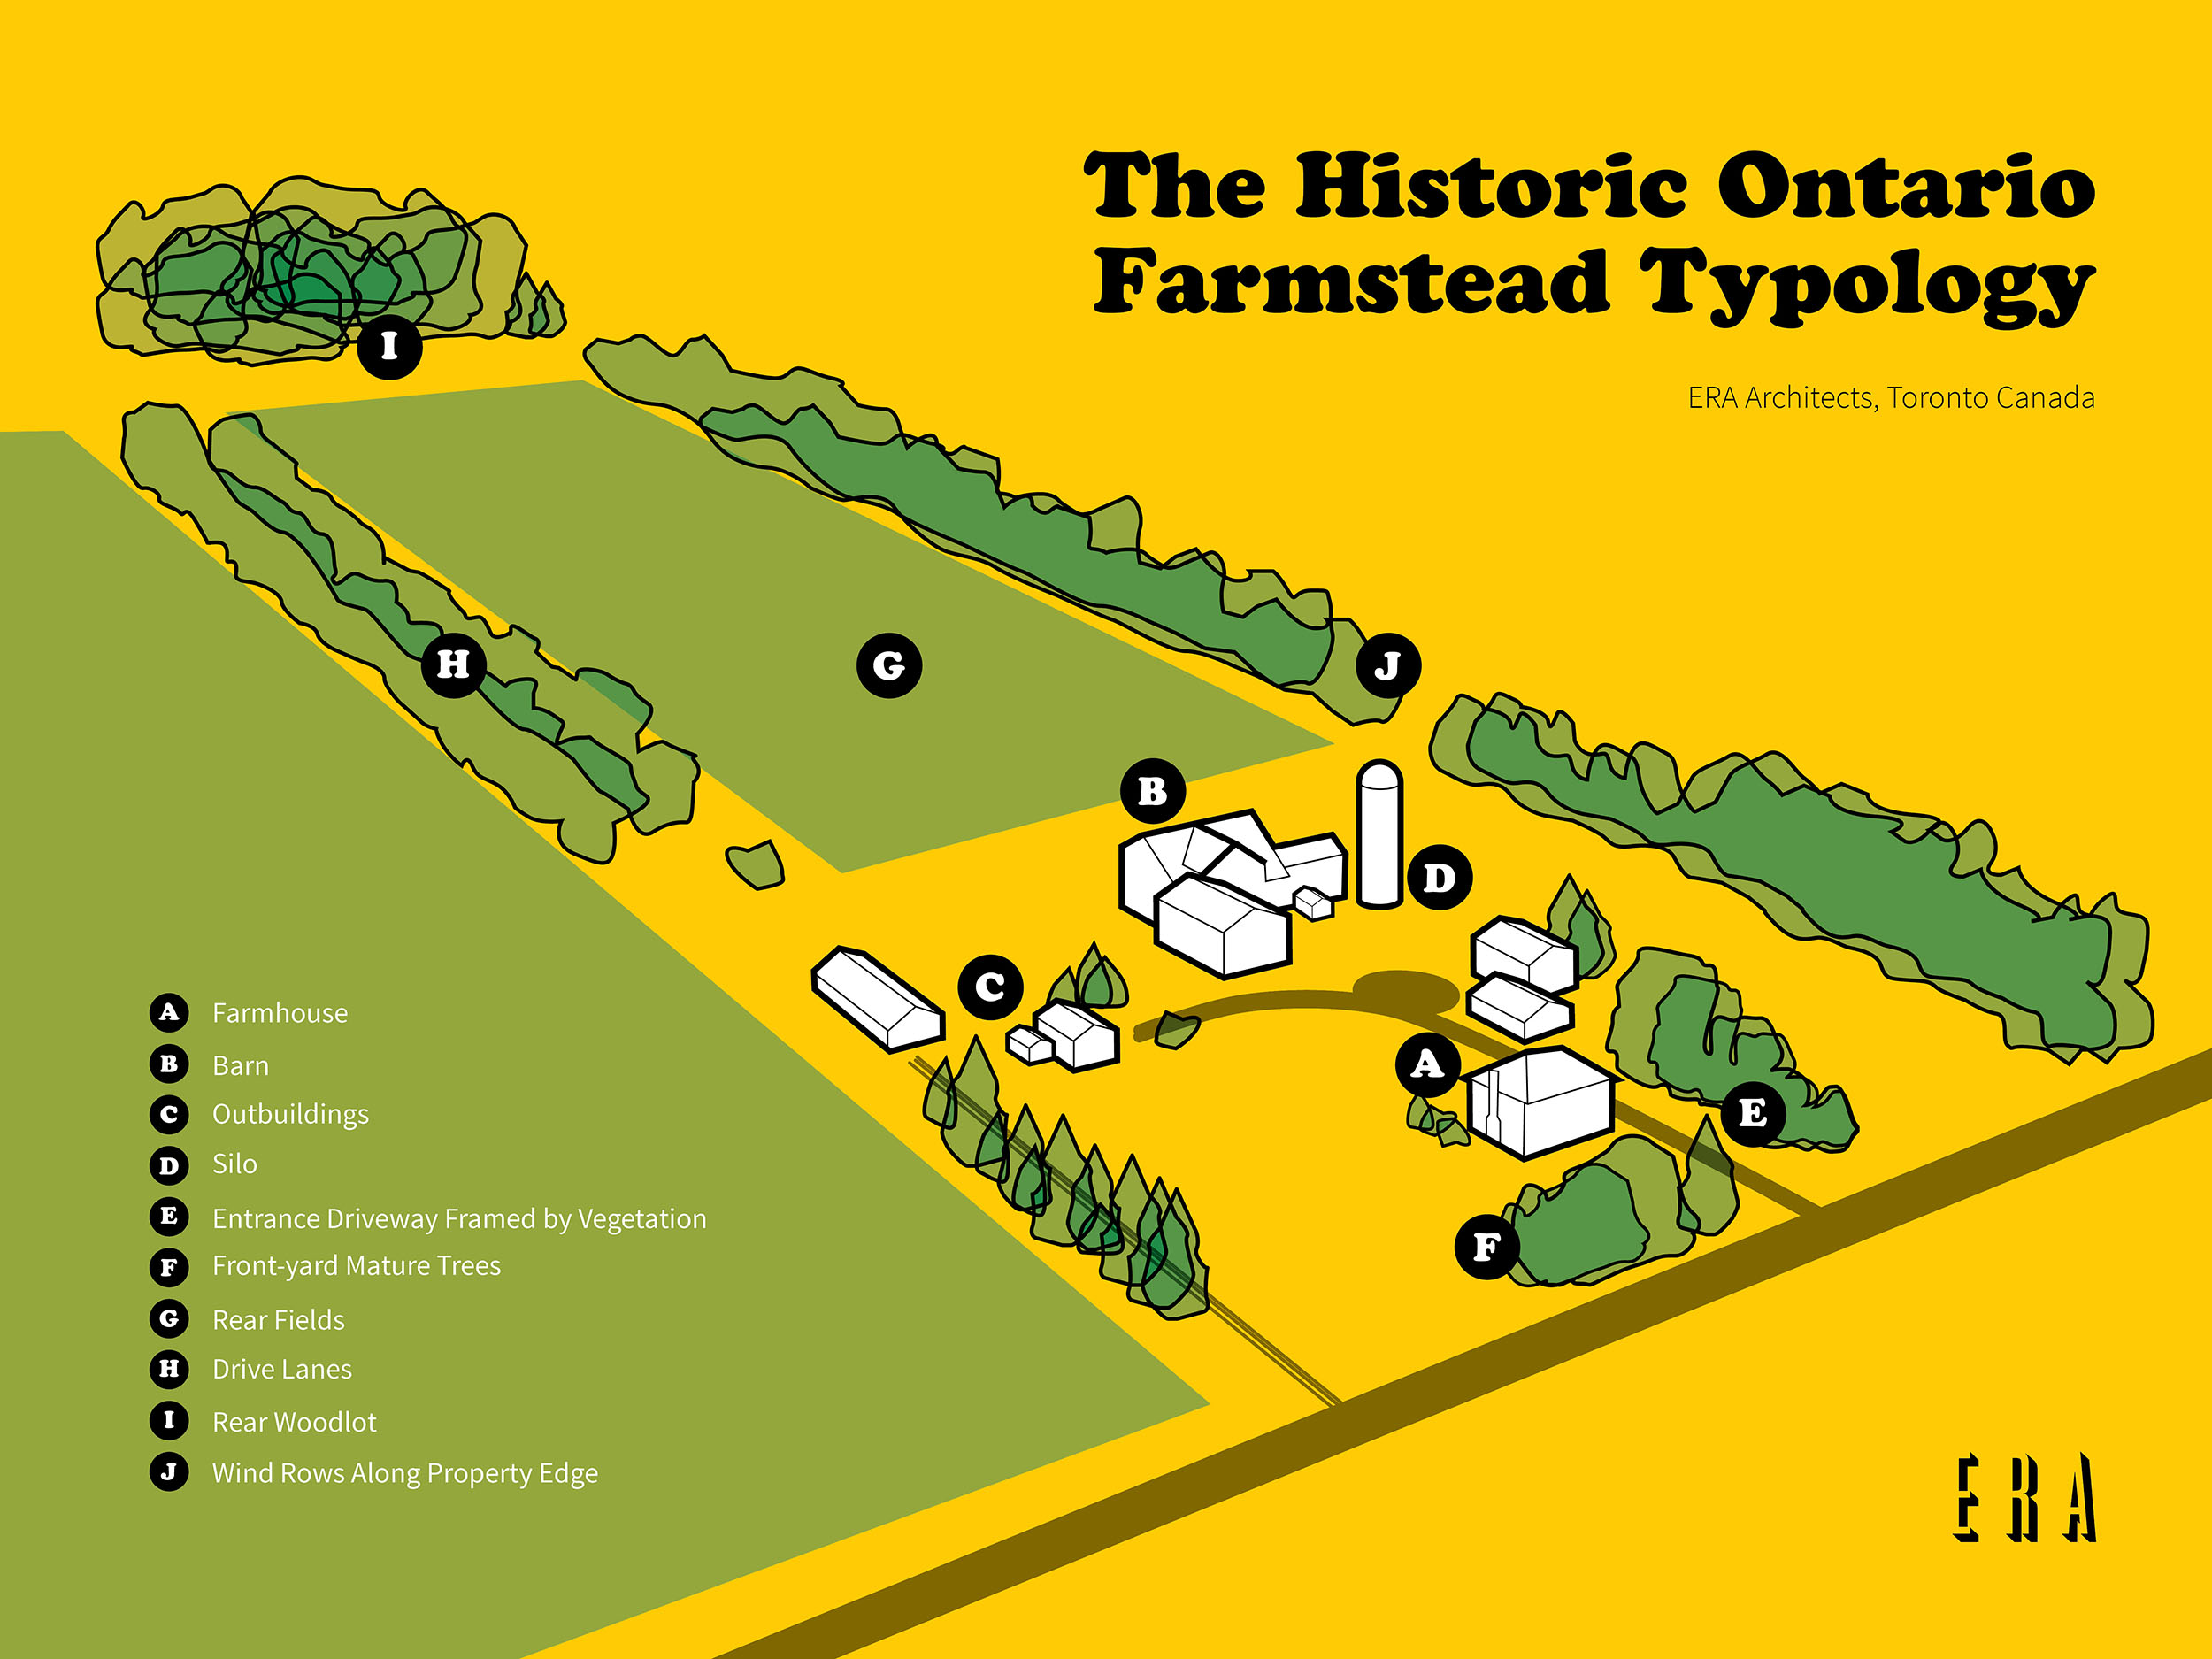 Ontario Farmstead Typology